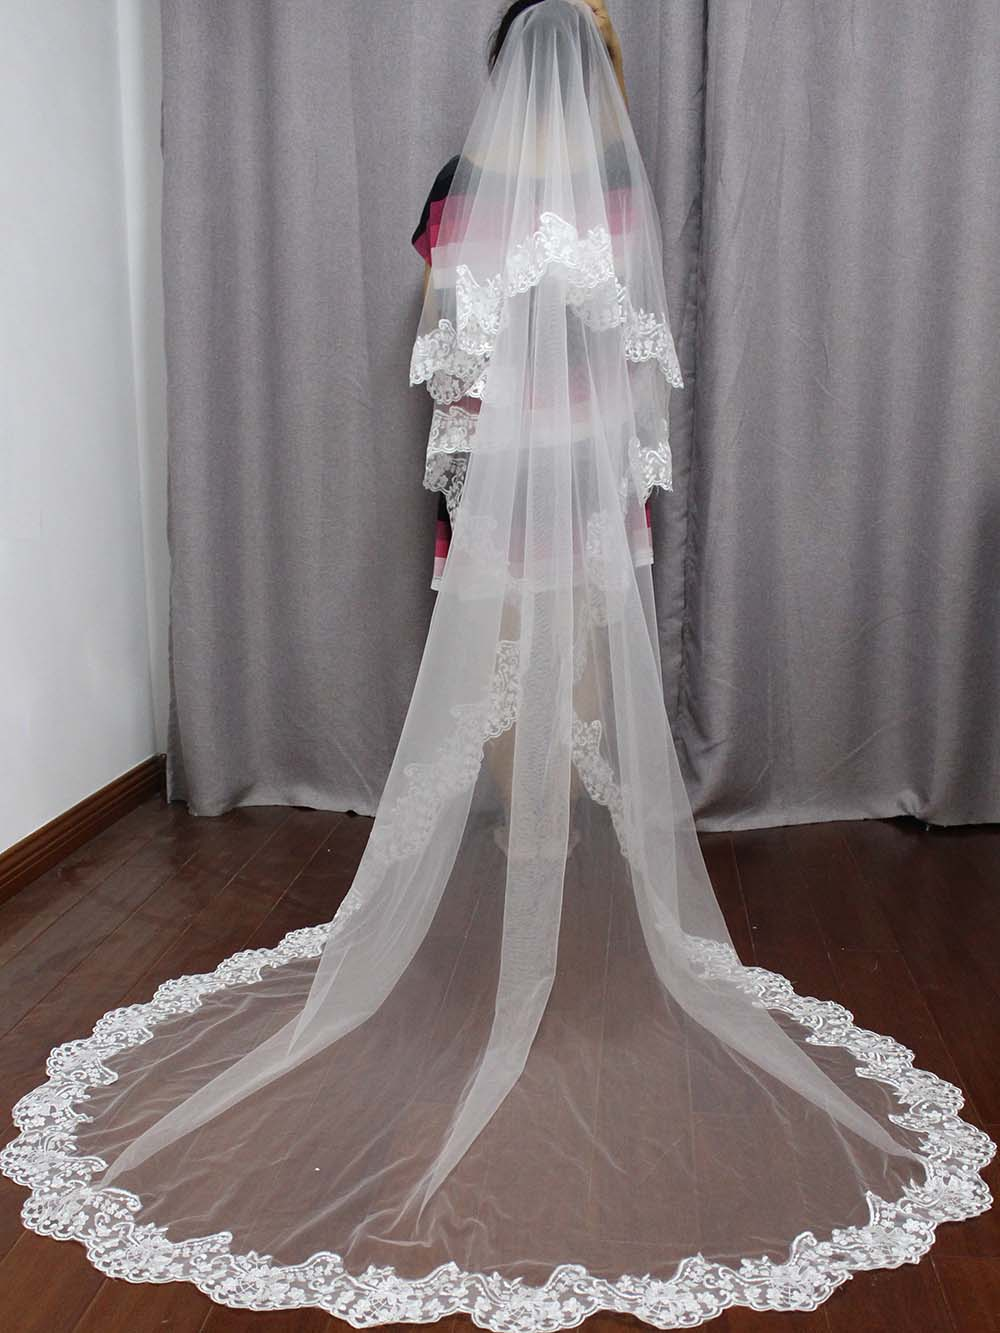 Elegant 2 Tiers Cover Face Wedding Veil With Blusher Soft Tulle White Ivory Bridal Veil With Comb 2.5 Meters Wedding Acessories